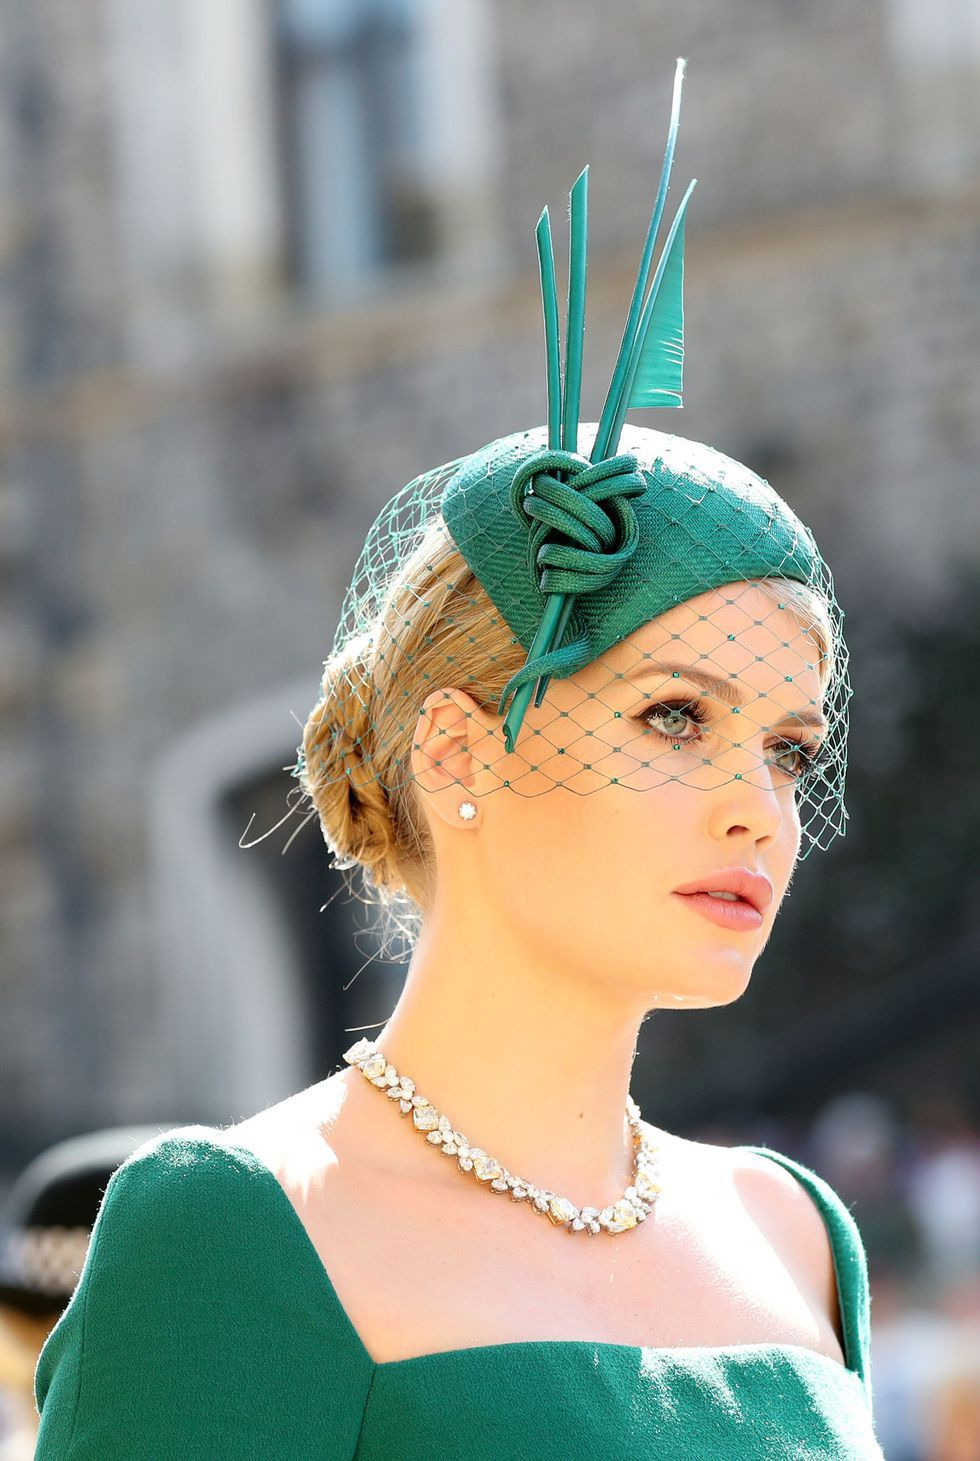 25 Best Hats and Fascinators From the Royal Wedding